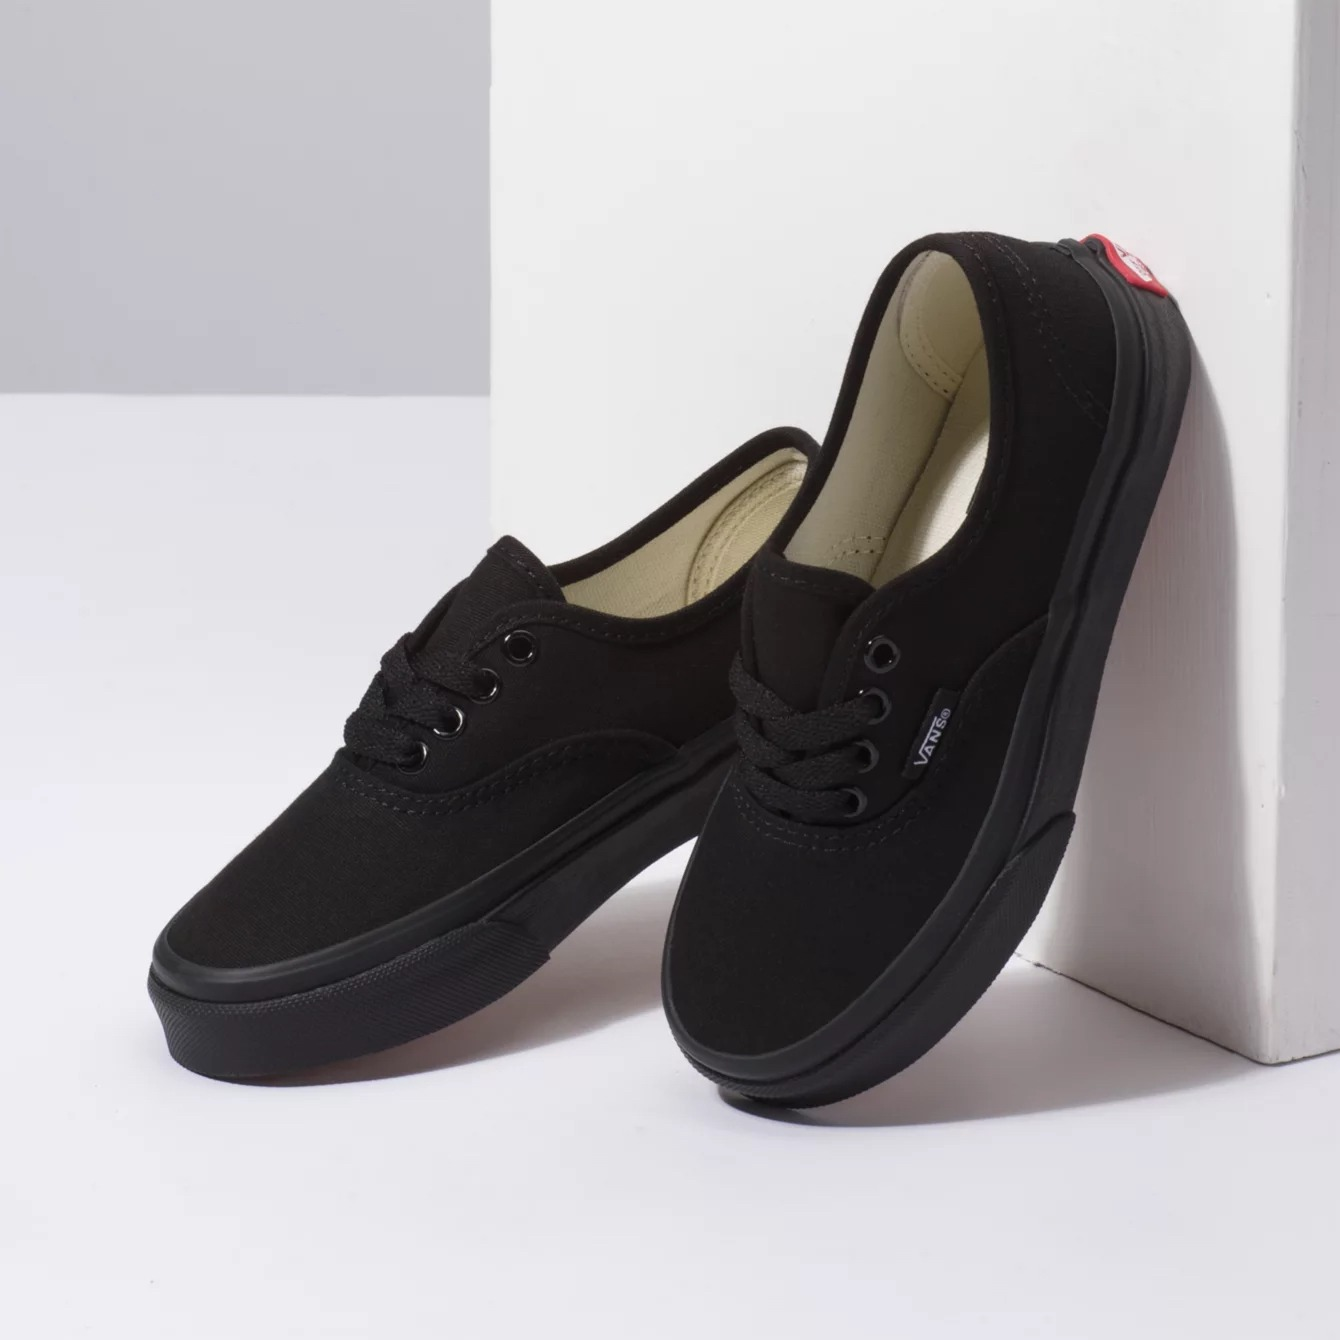 Vans Authentic kids Black/Black side view side